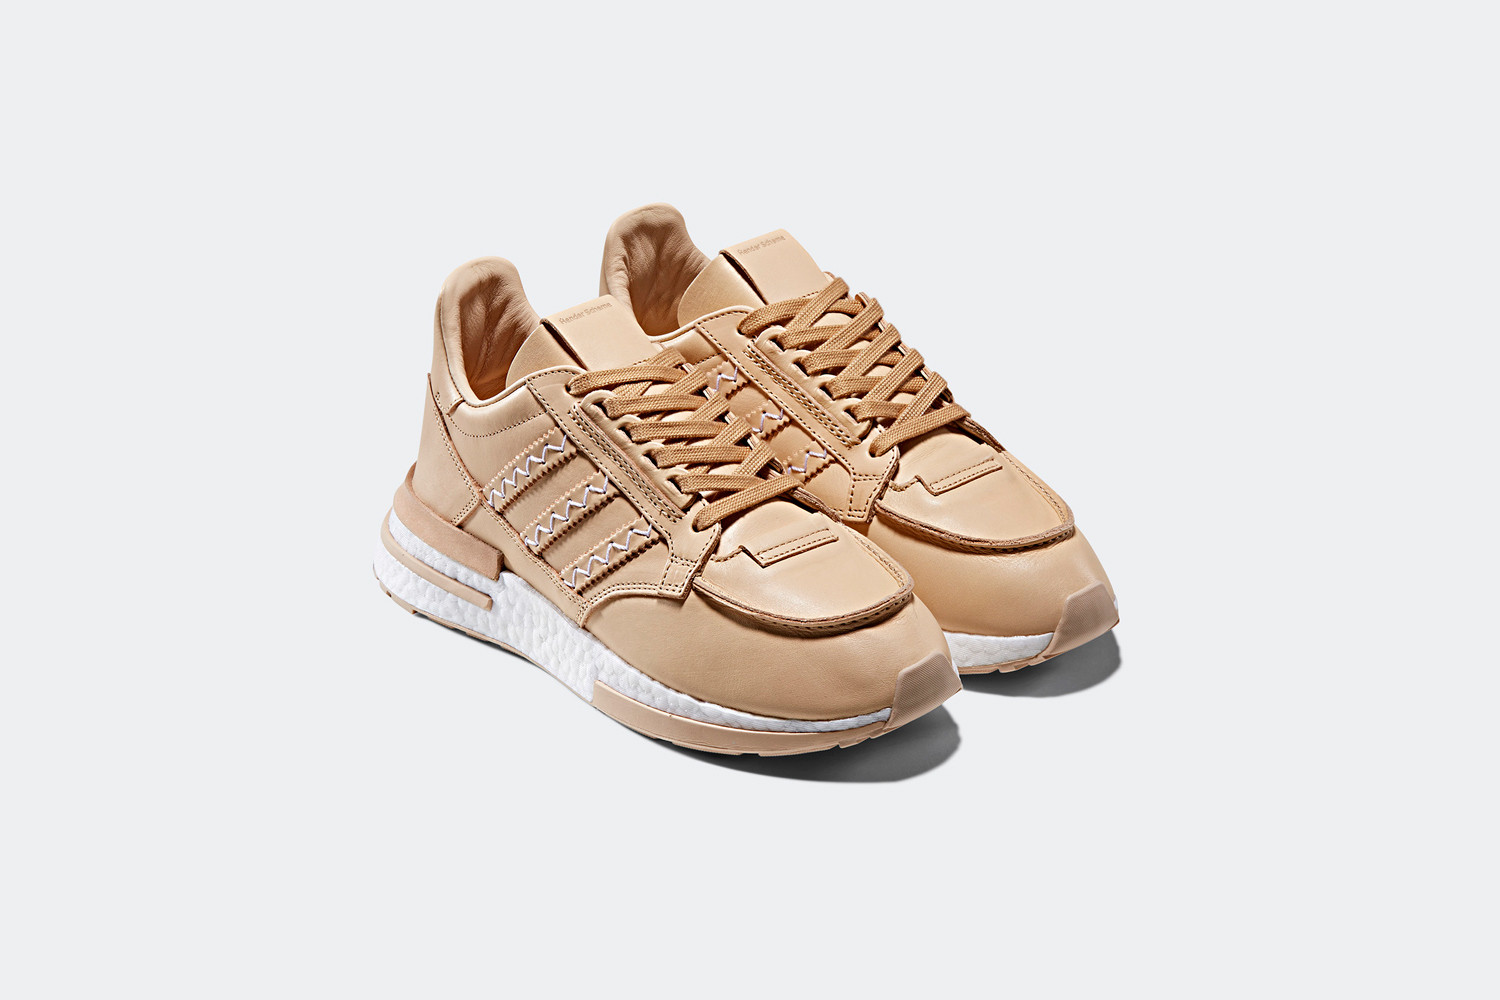 adidas-originals-x-hender-scheme-fall-winter-2018-collection-7